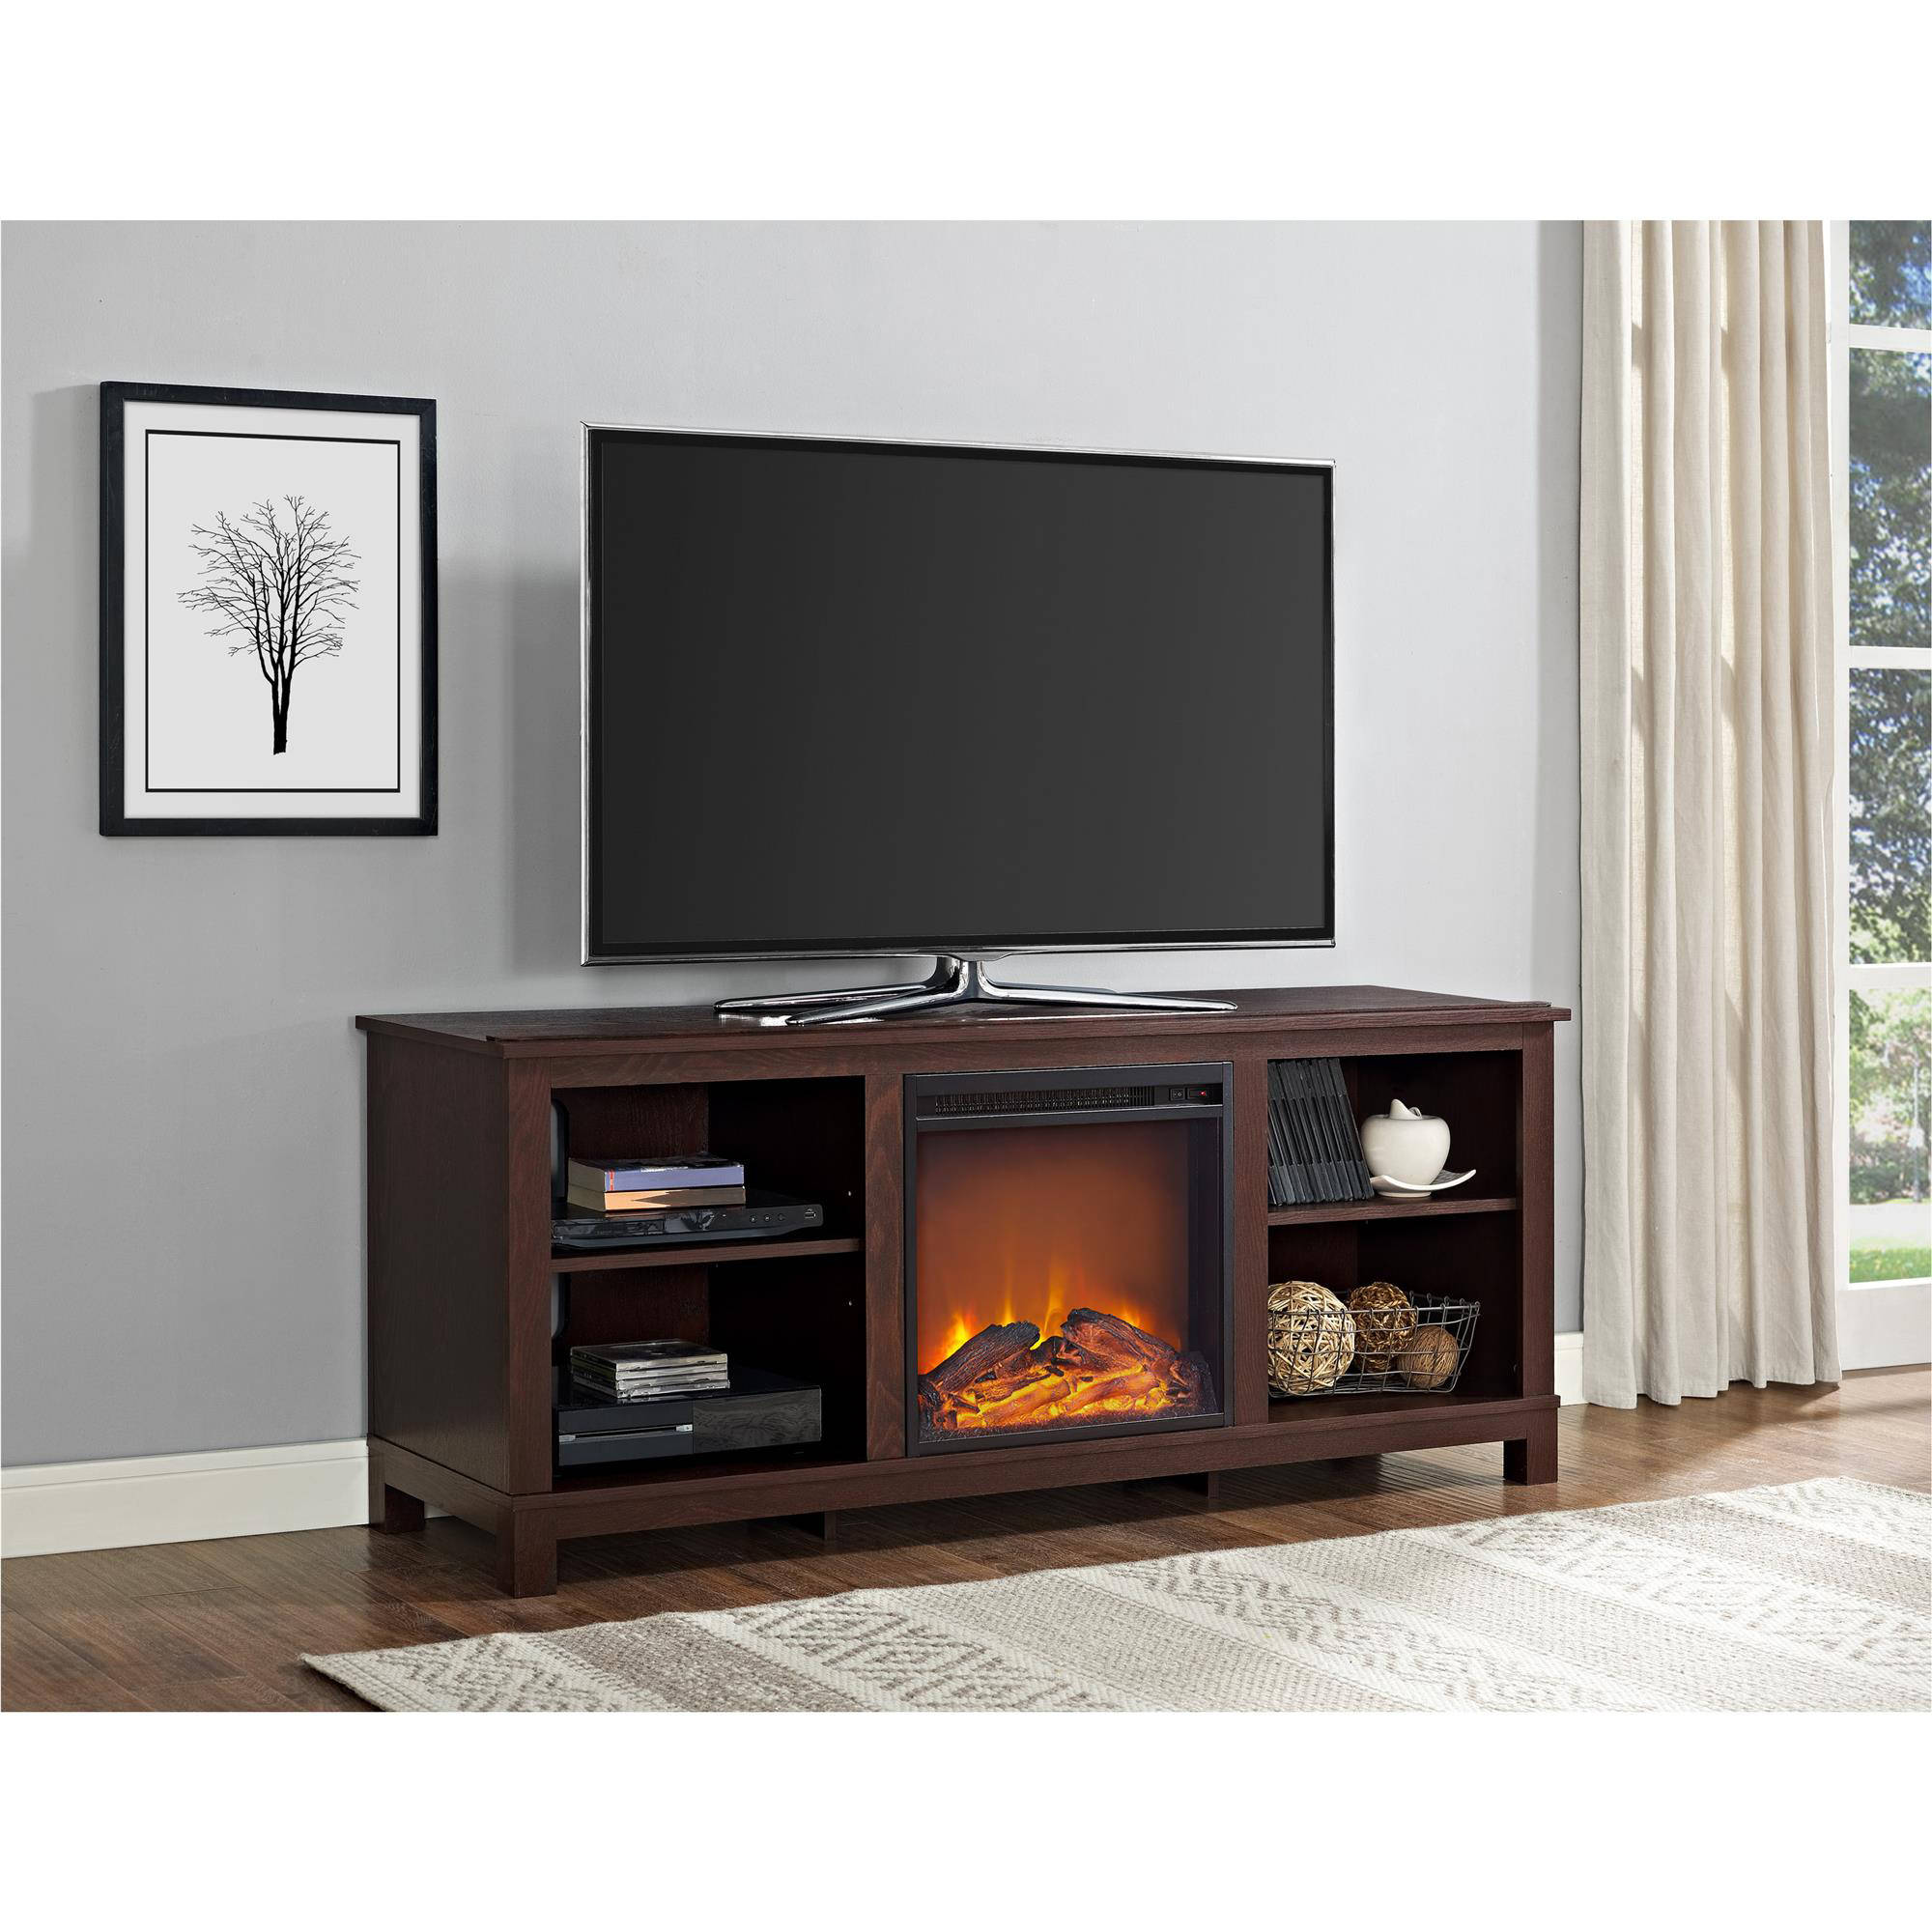 "Altra Edgewood TV Console with Fireplace for TVs up to 60"", Espresso"